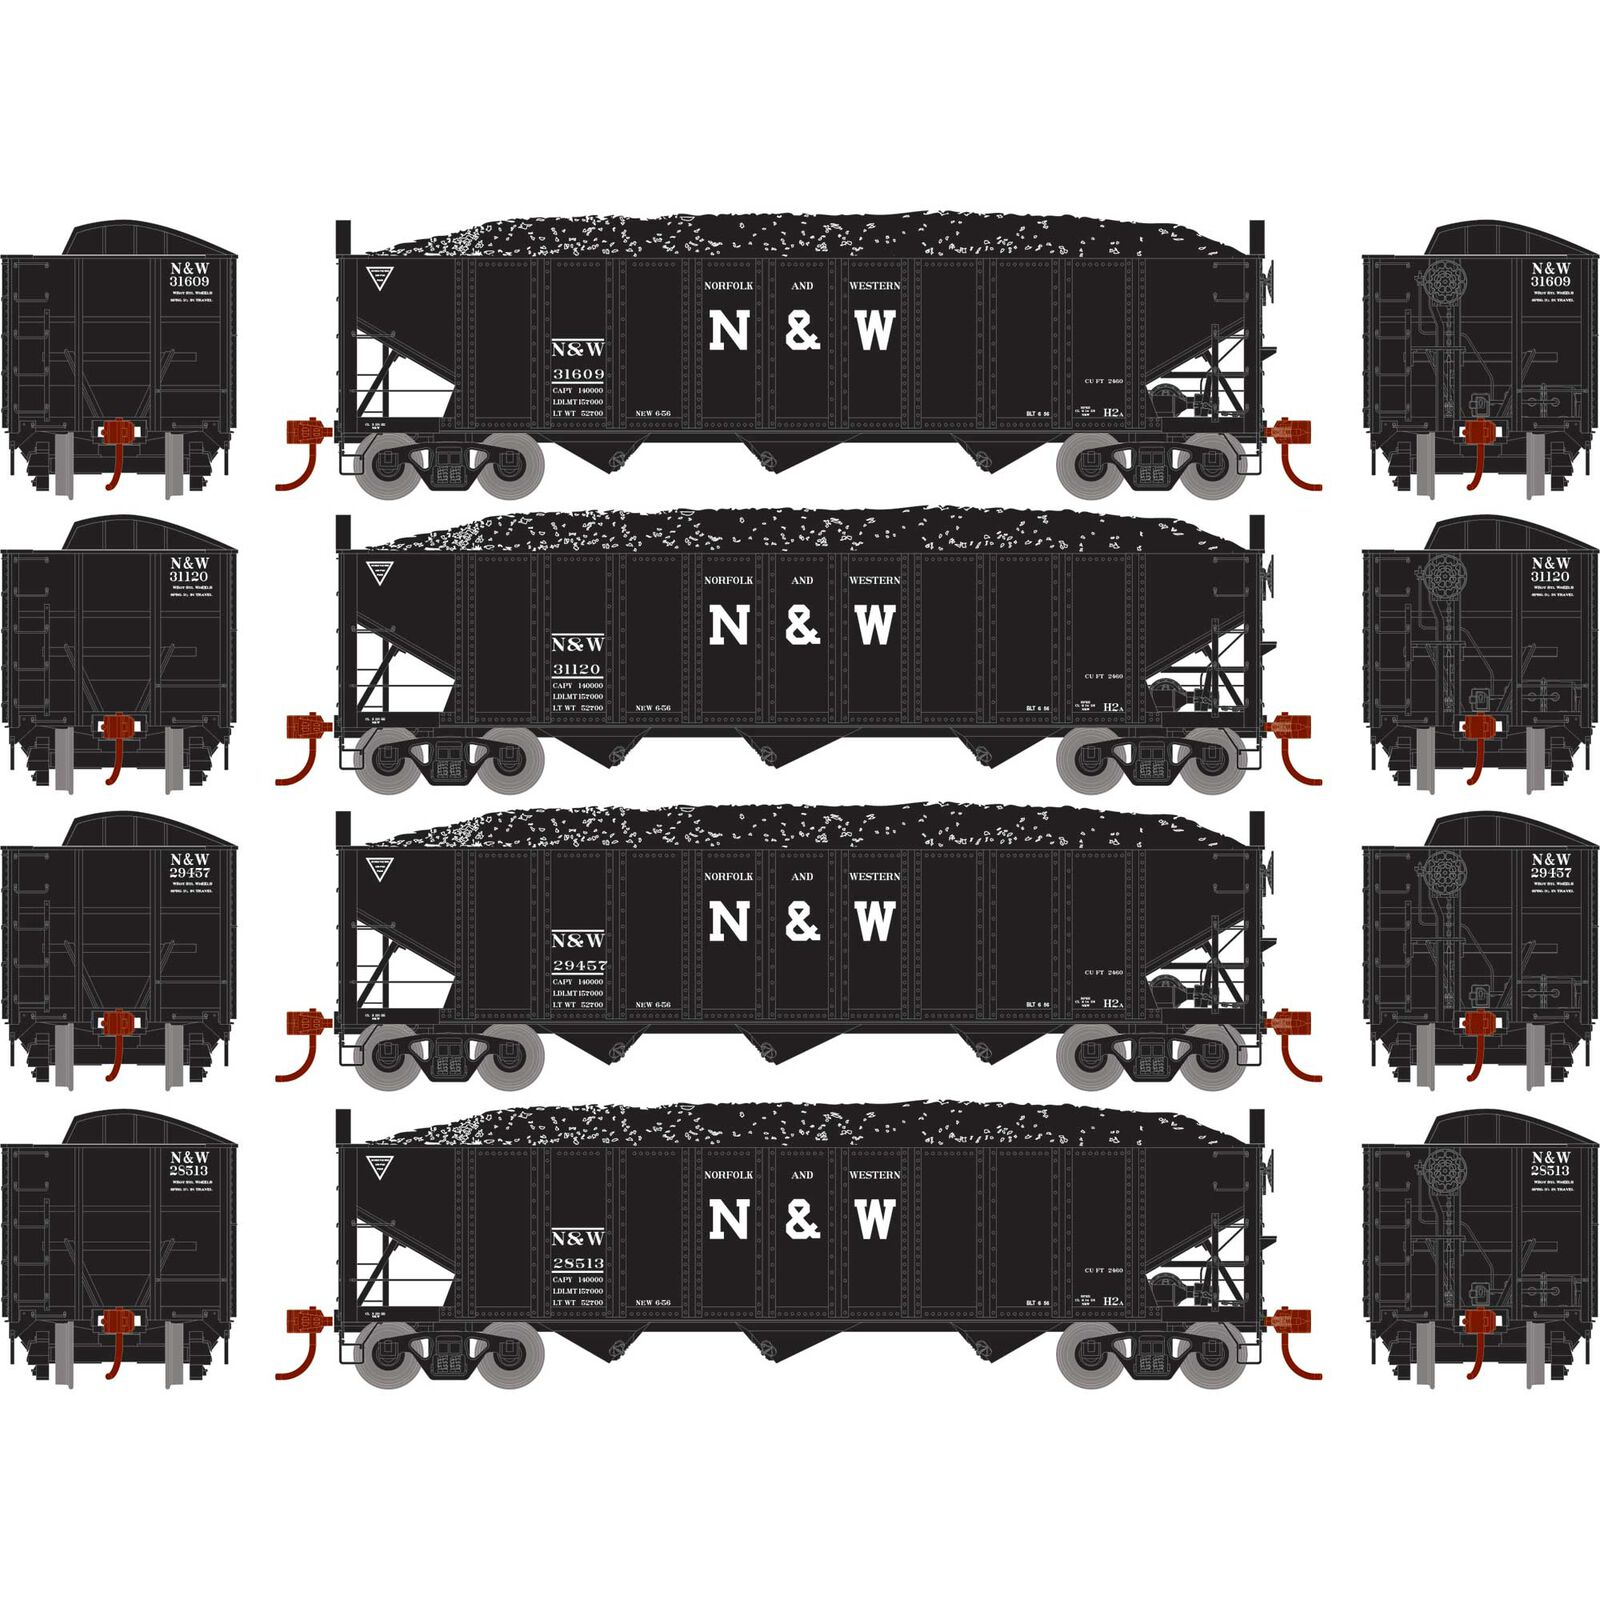 HO RTR 40' 3-Bay Ribbed Hopper with Load, N&W (4)